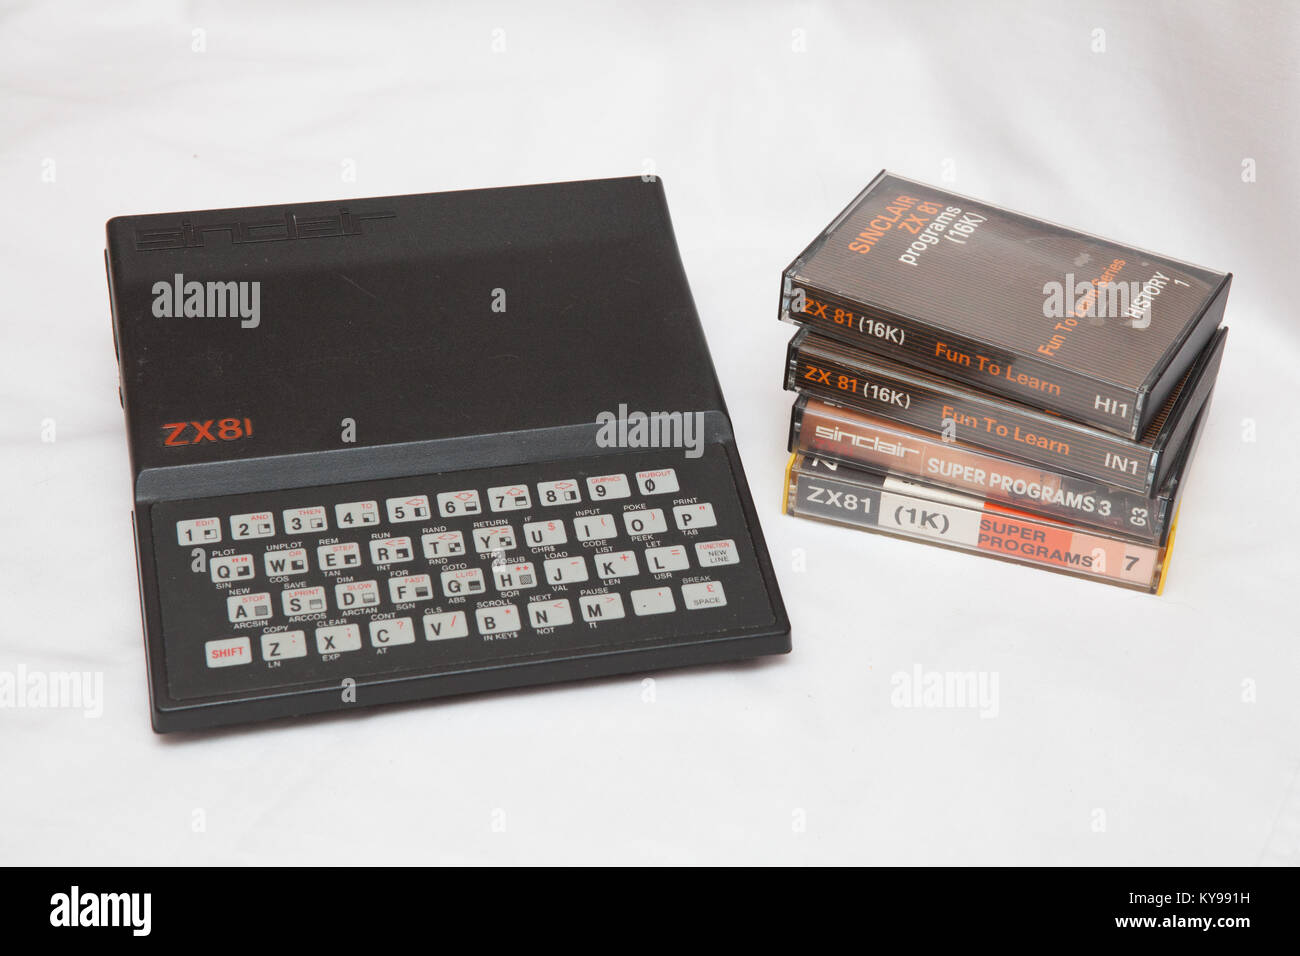 Sinclair Research ZX81 home computer with associated cassette tapes - Stock Image